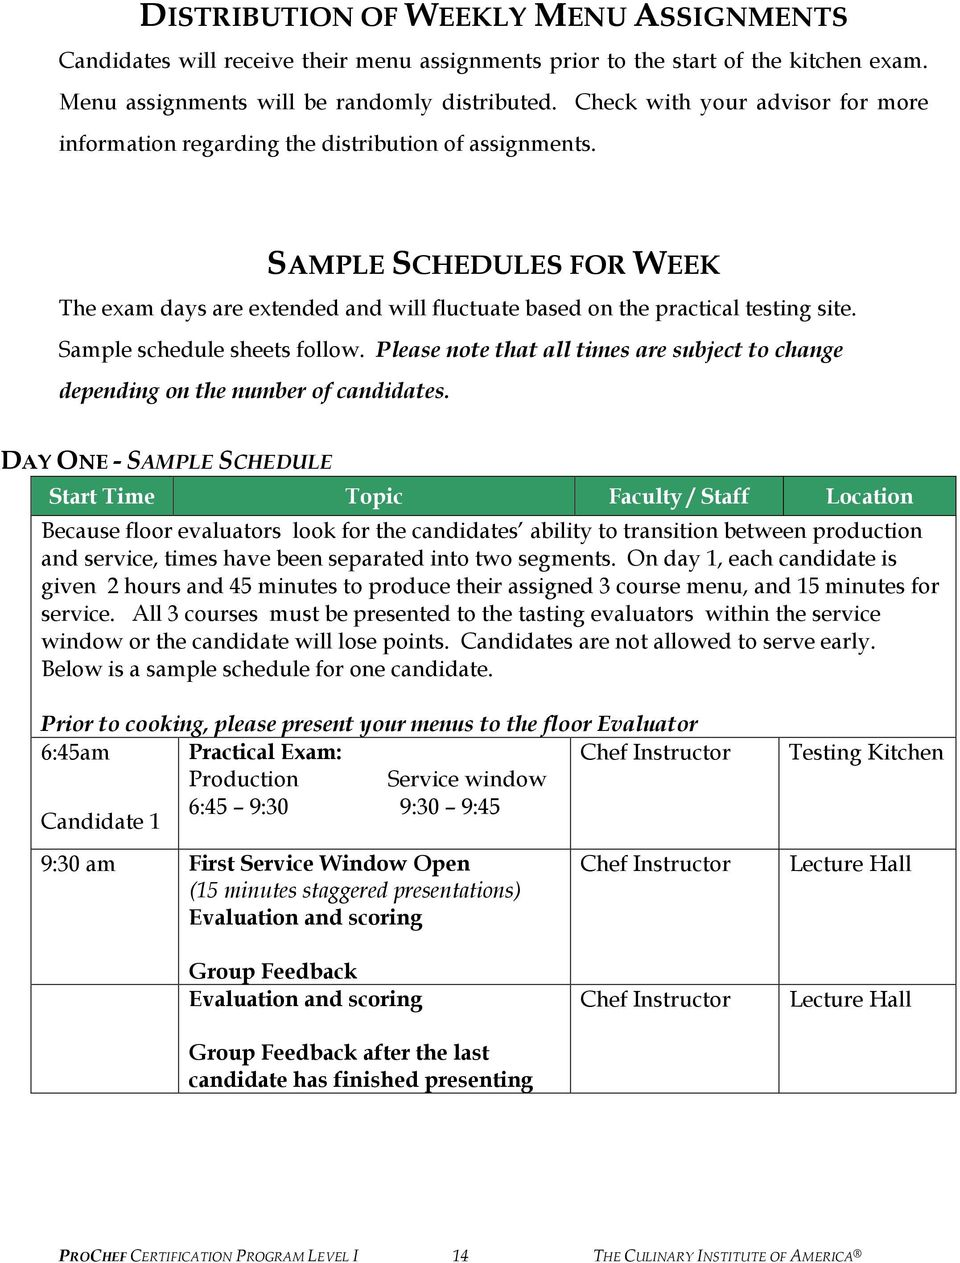 Sample schedule sheets follow. Please note that all times are subject to change depending on the number of candidates.